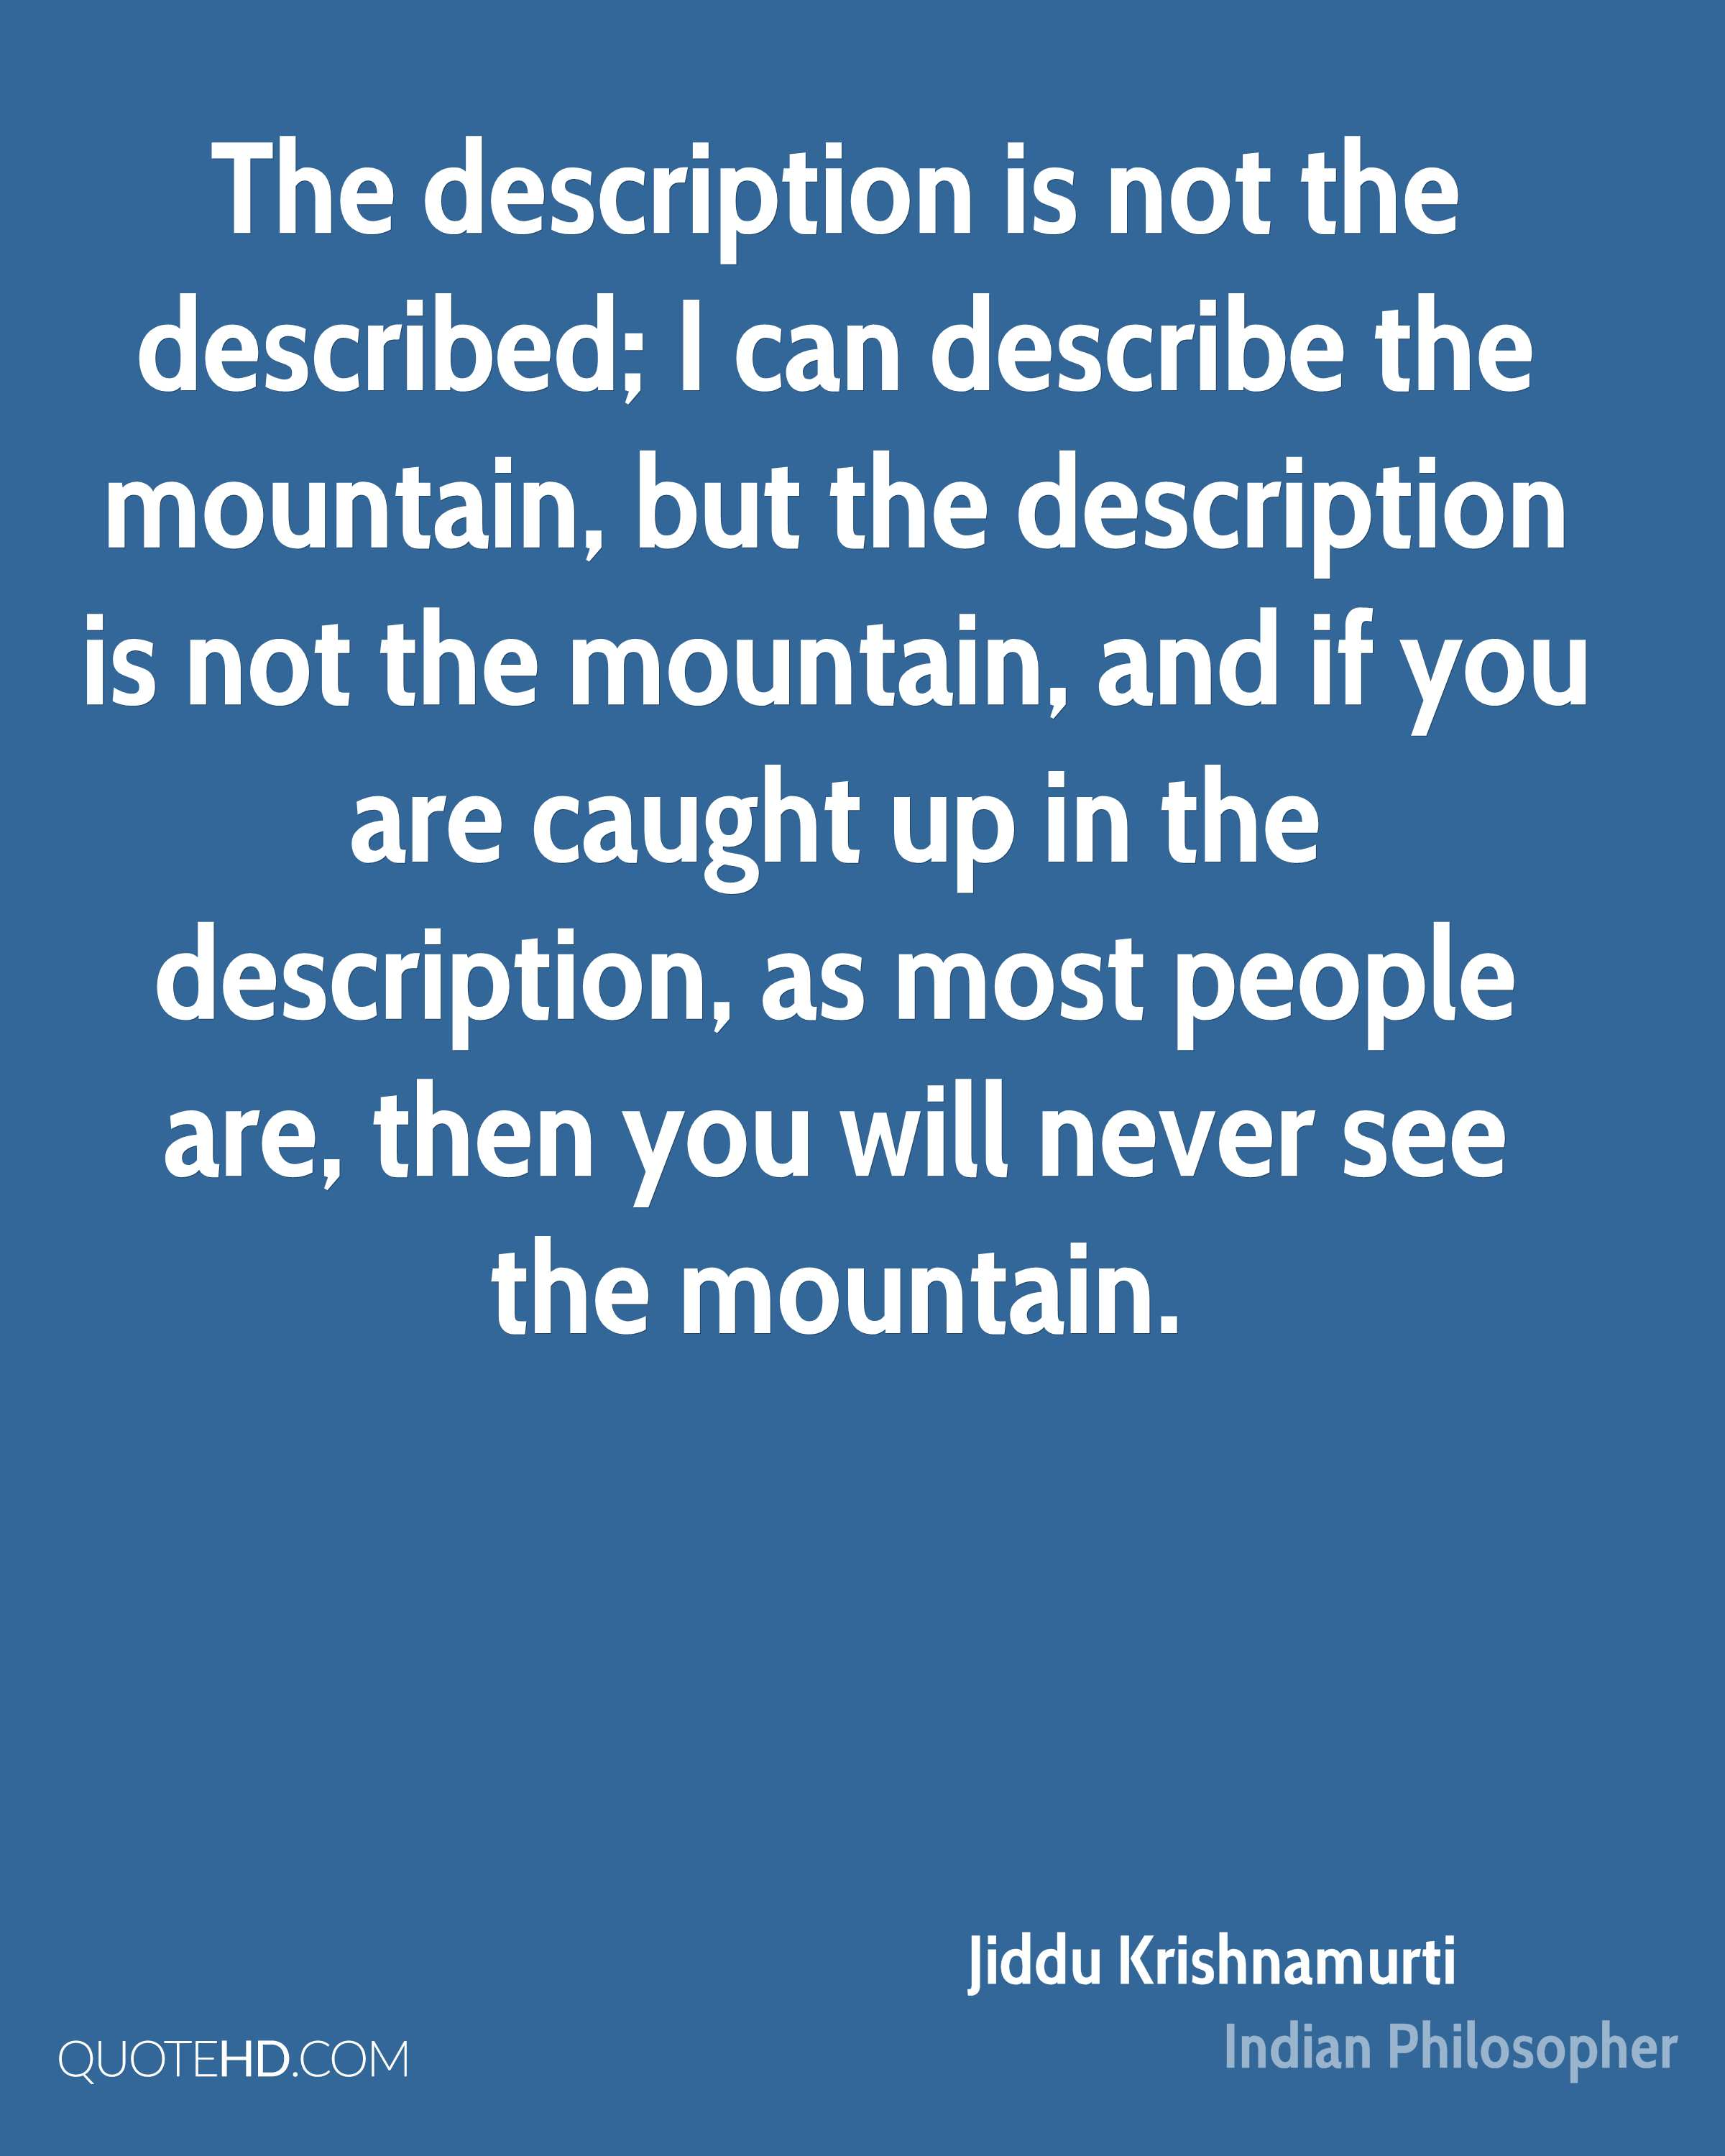 The description is not the described; I can describe the mountain, but the description is not the mountain, and if you are caught up in the description, as most people are, then you will never see the mountain.